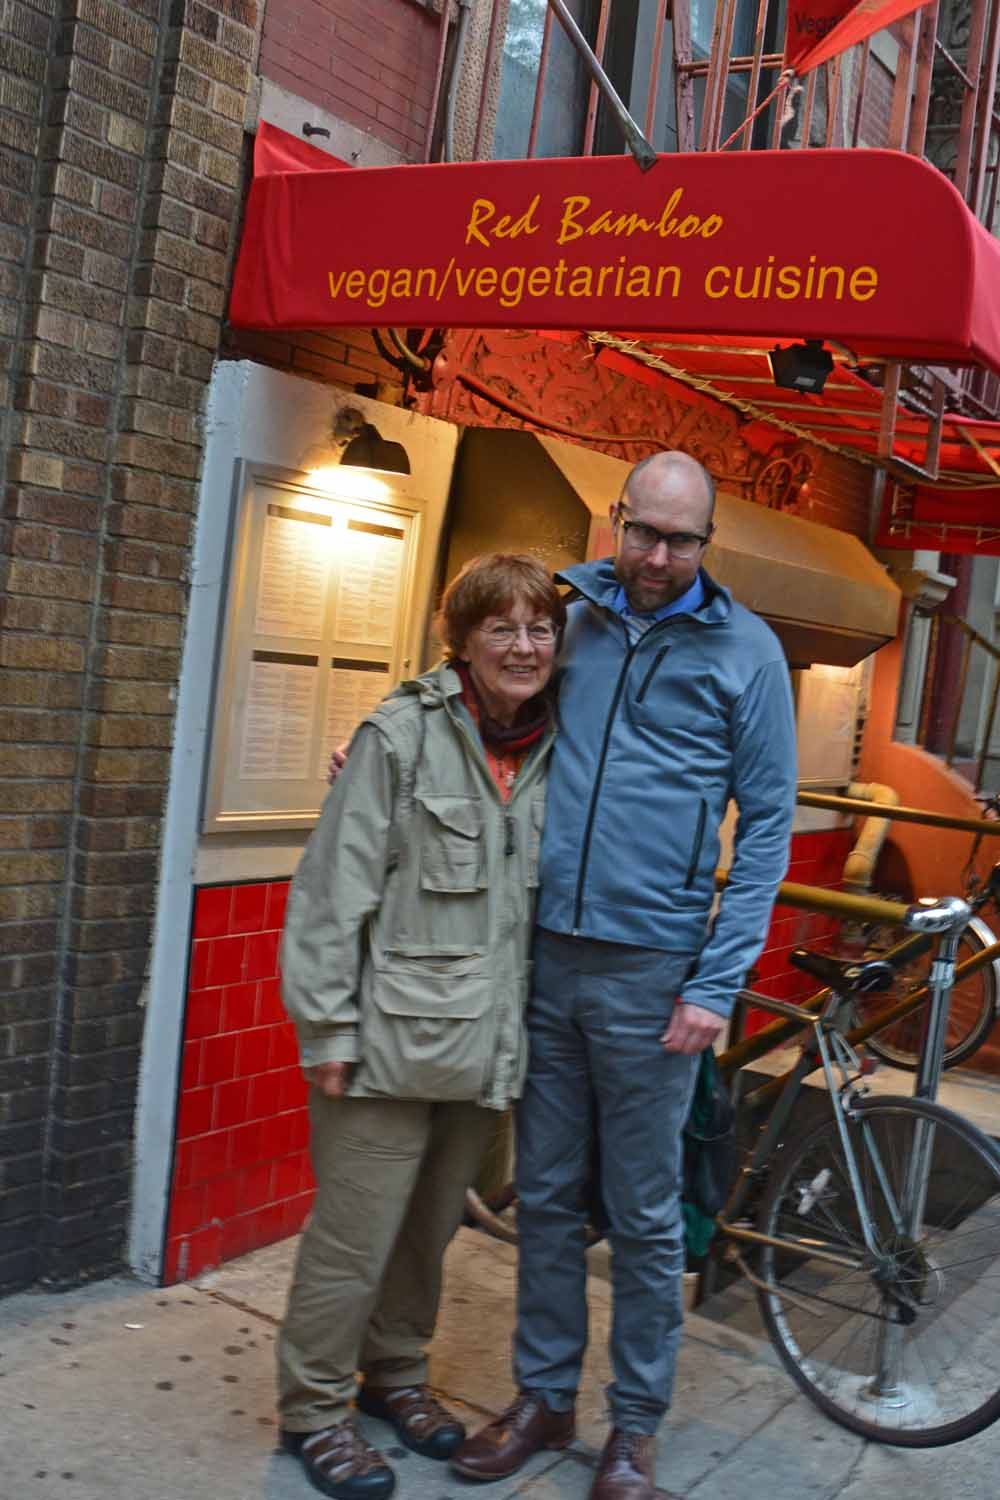 Jan and Karl liked this place as it was truly  Vegan